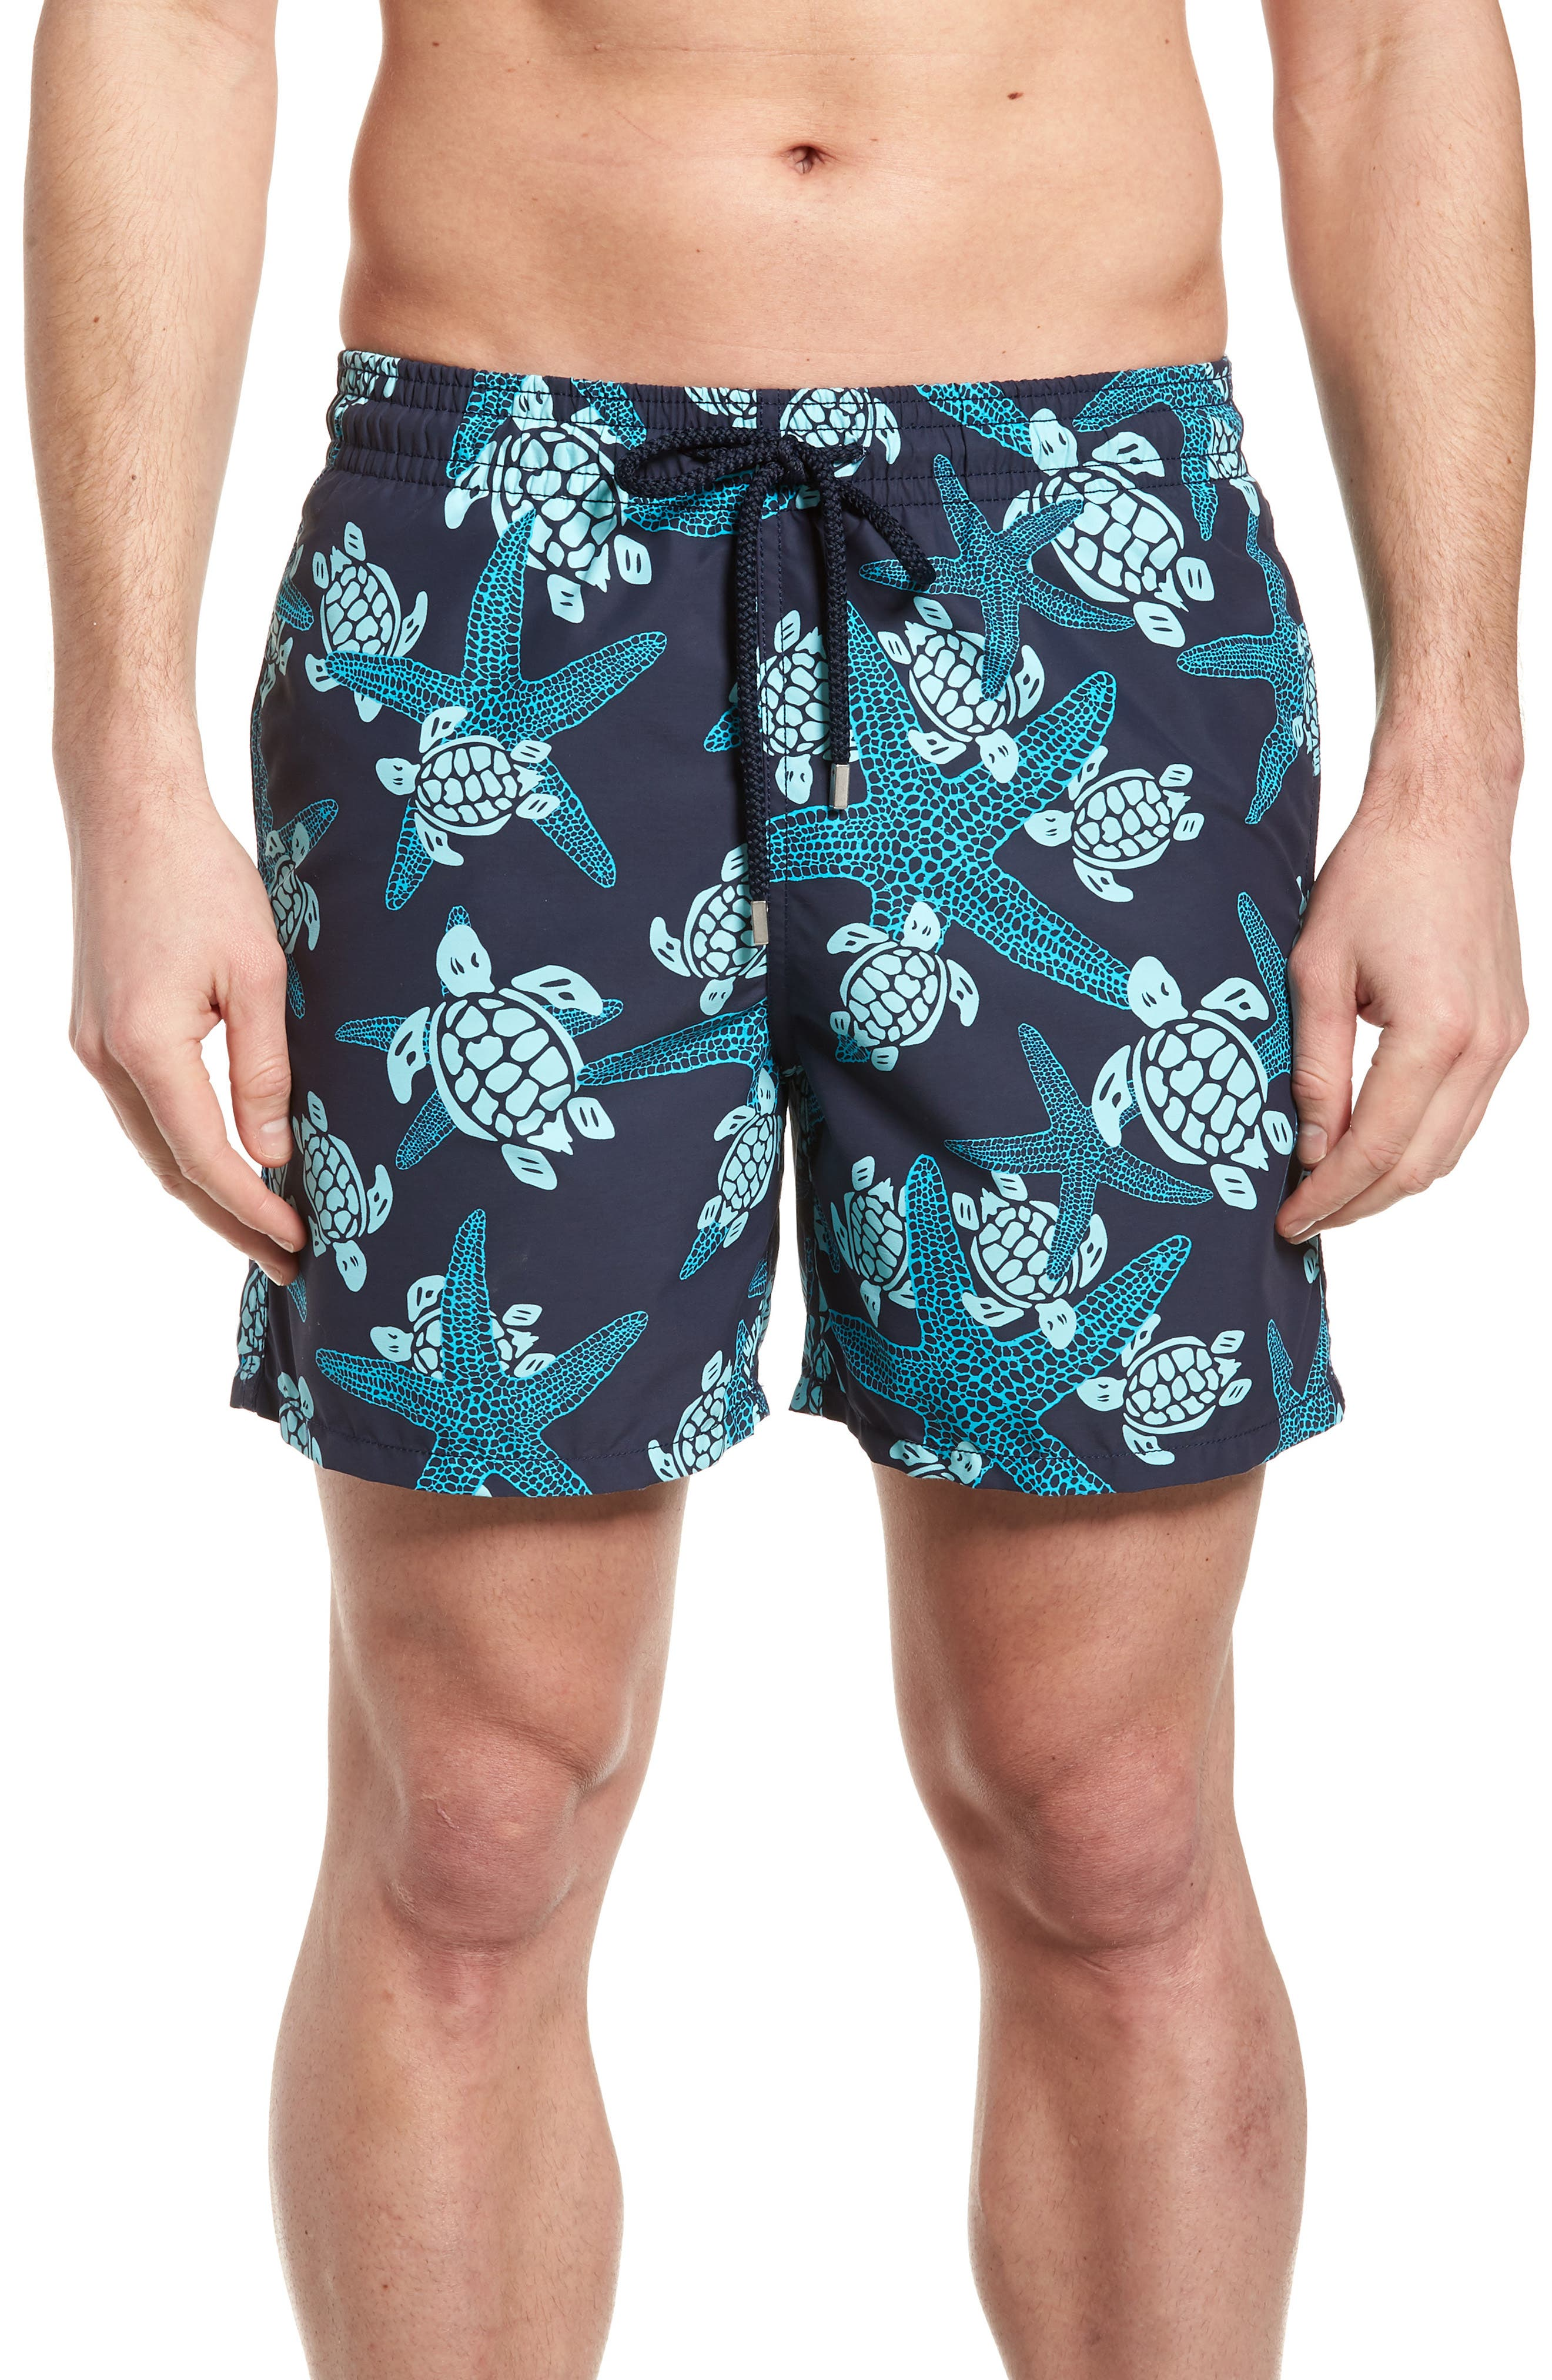 Starlette Turtle Print Swim Trunks,                             Main thumbnail 1, color,                             NAVY